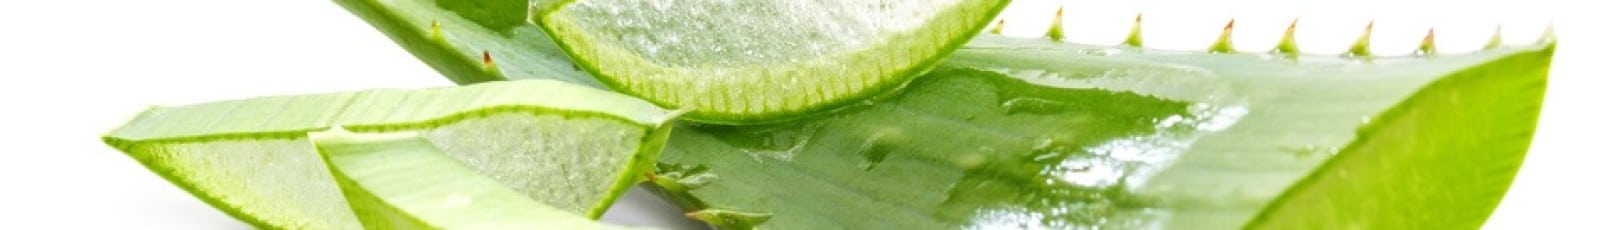 Aloe Vera Drinking Gel header image